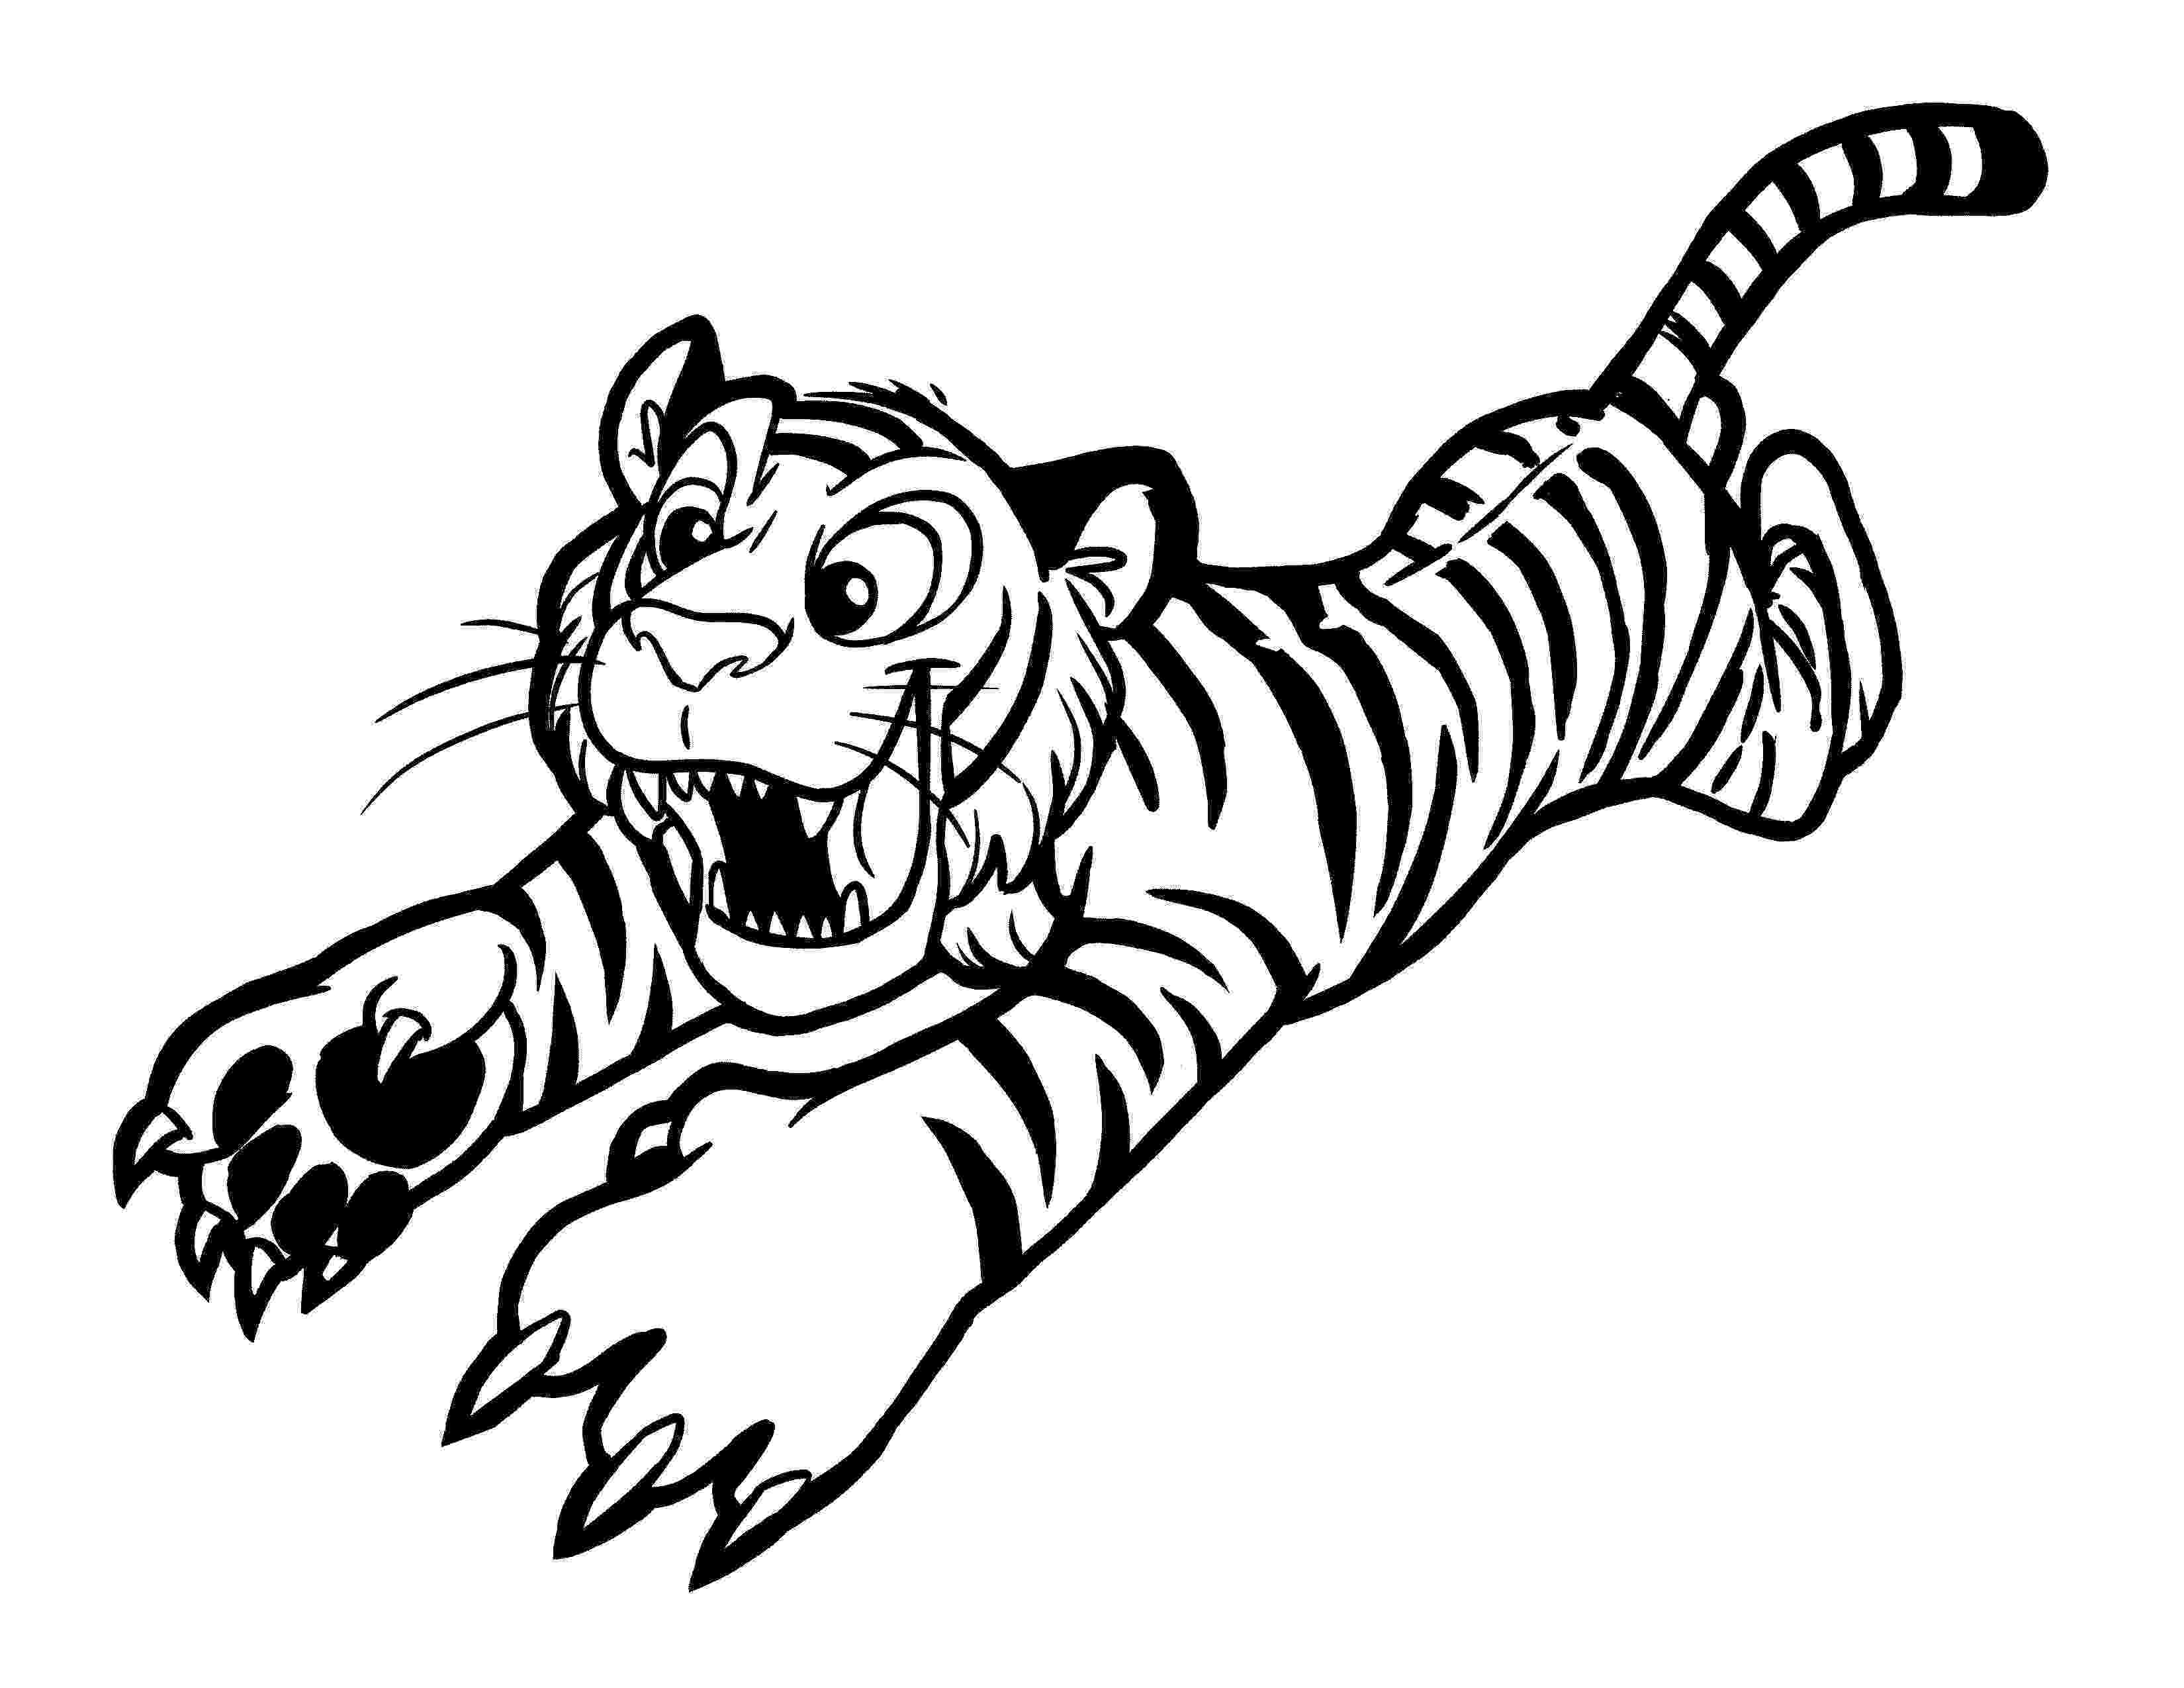 tiger color tiger coloring pages free download on clipartmag tiger color